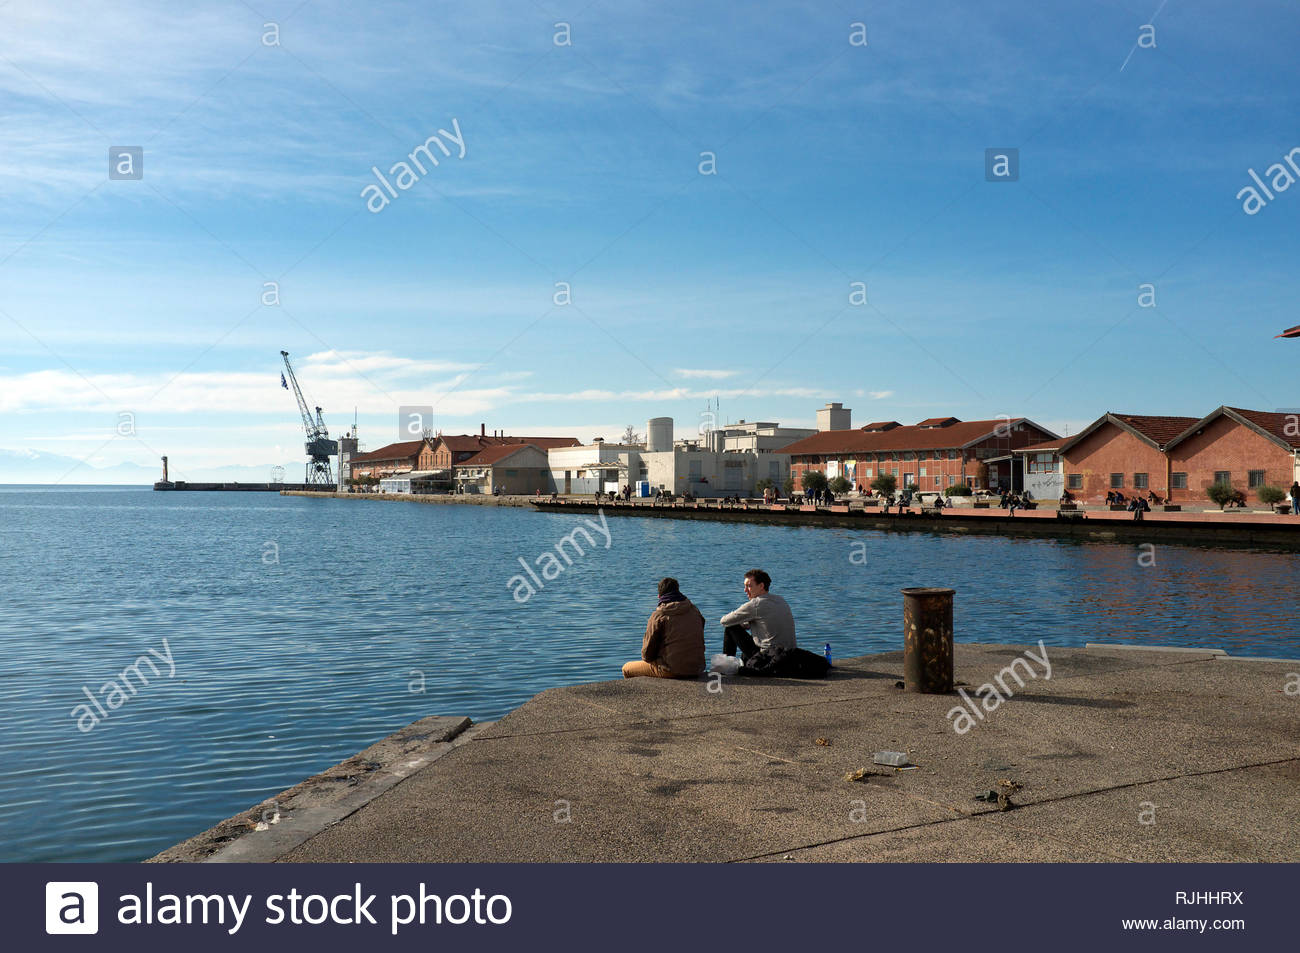 View of Dock A, the old port area of Thessaloniki, in Central Macedonia, Greece. Stock Photo